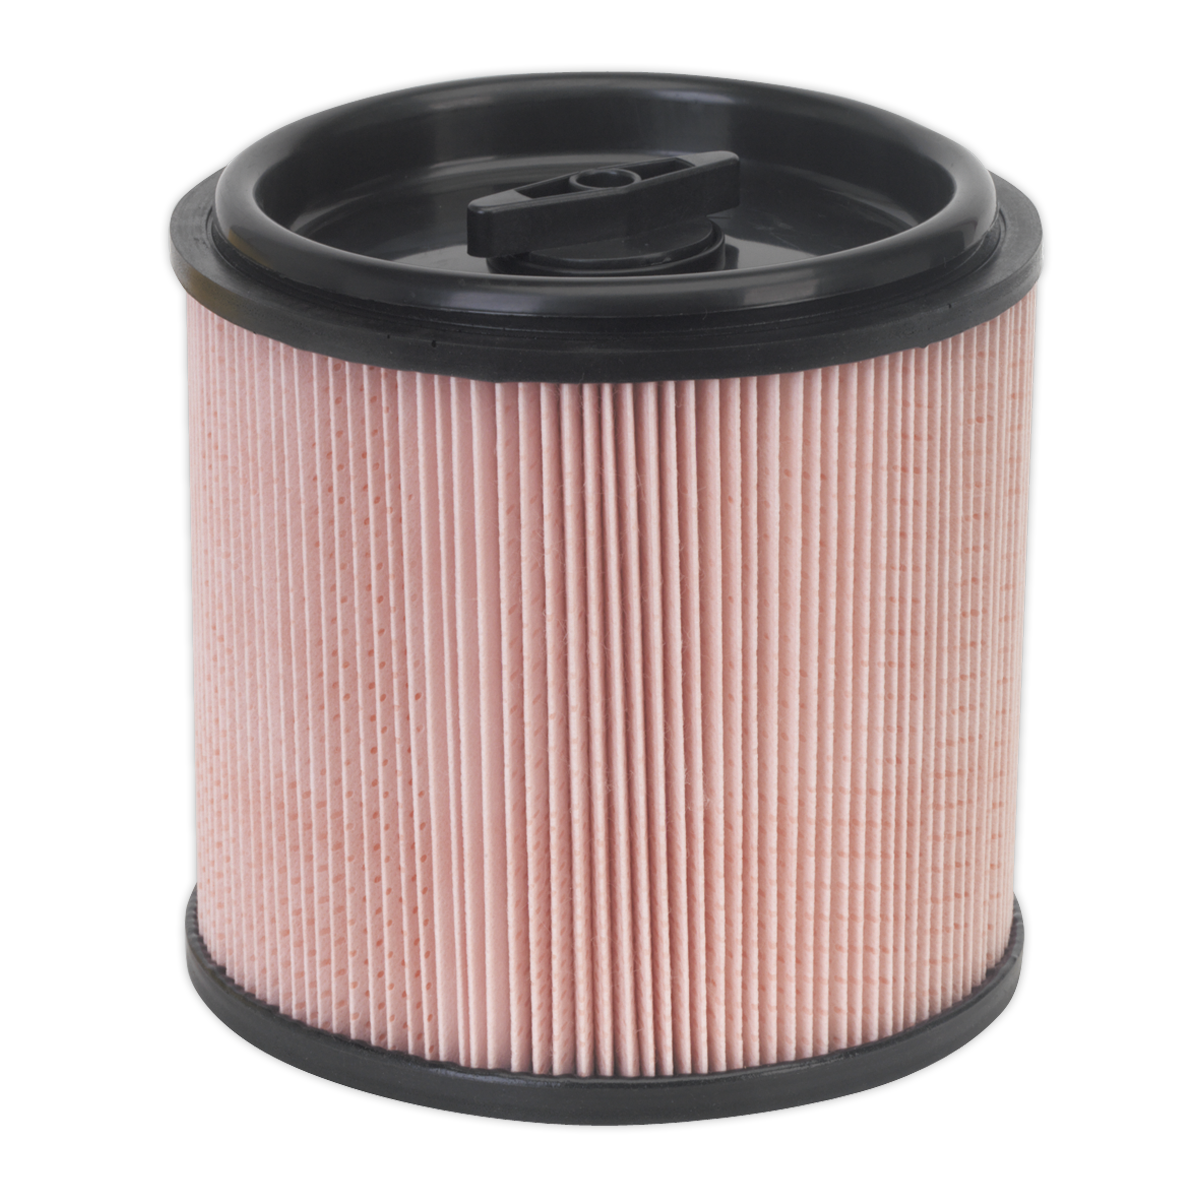 Cartridge Filter for Fine Dust for PC200 & PC300 Series